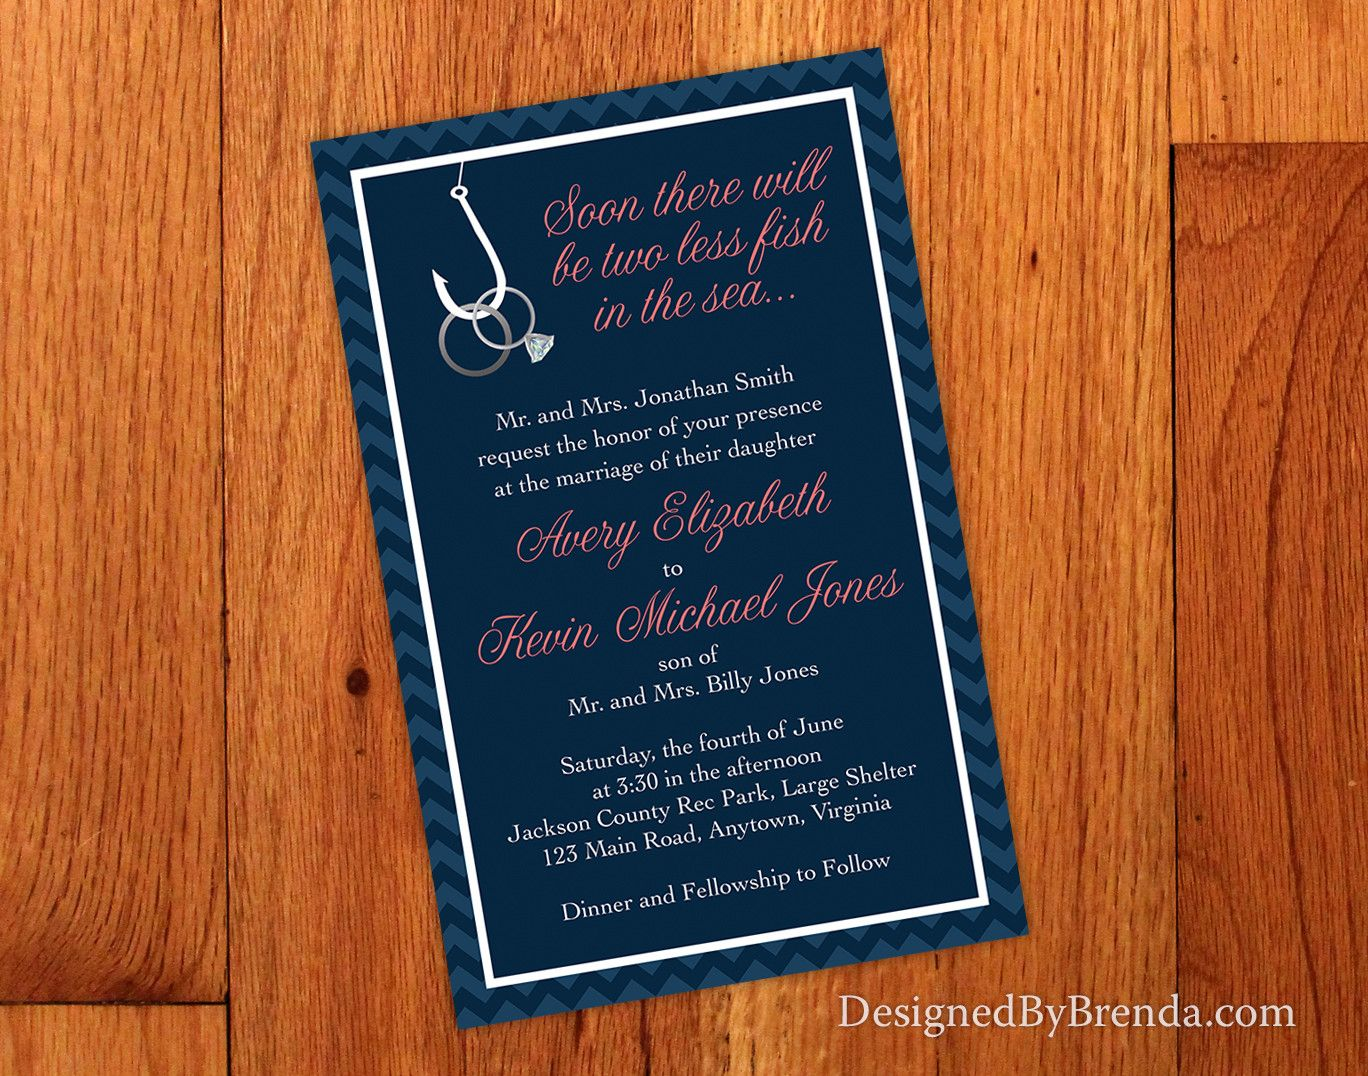 ee1ff88d32cf Two Less Fish in the Sea Wedding Invitation with Rings on Hook - Navy and  Coral